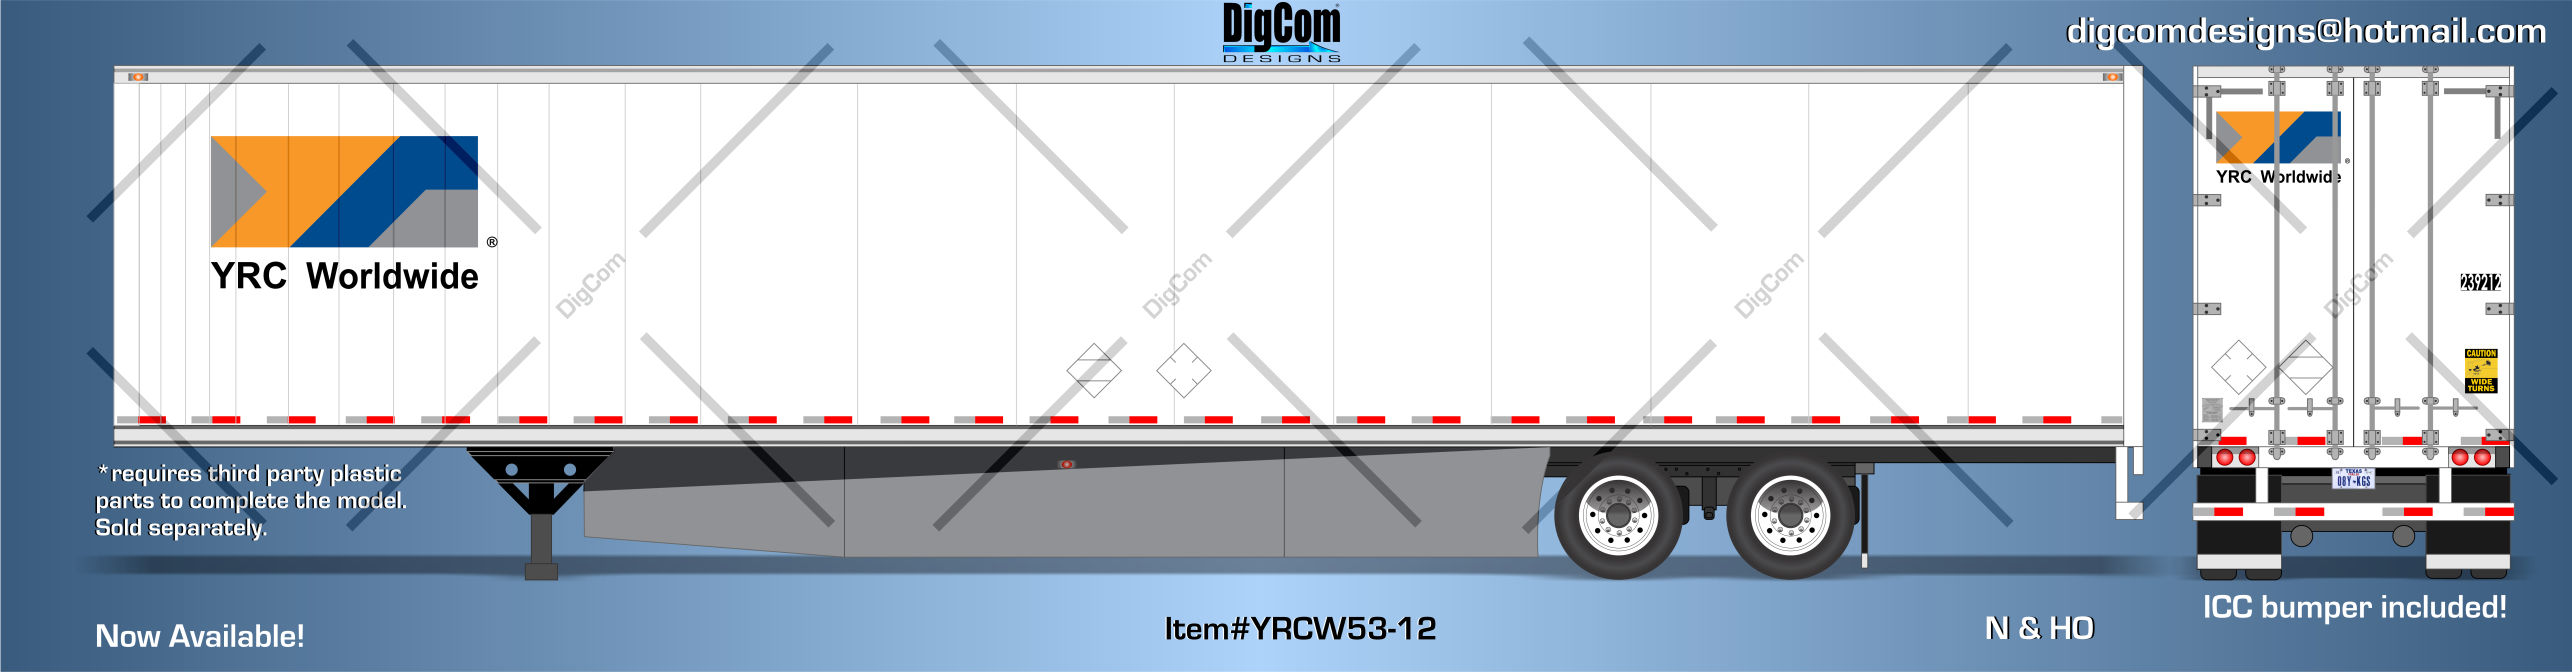 YRC world TRAILER DESIGN.jpg